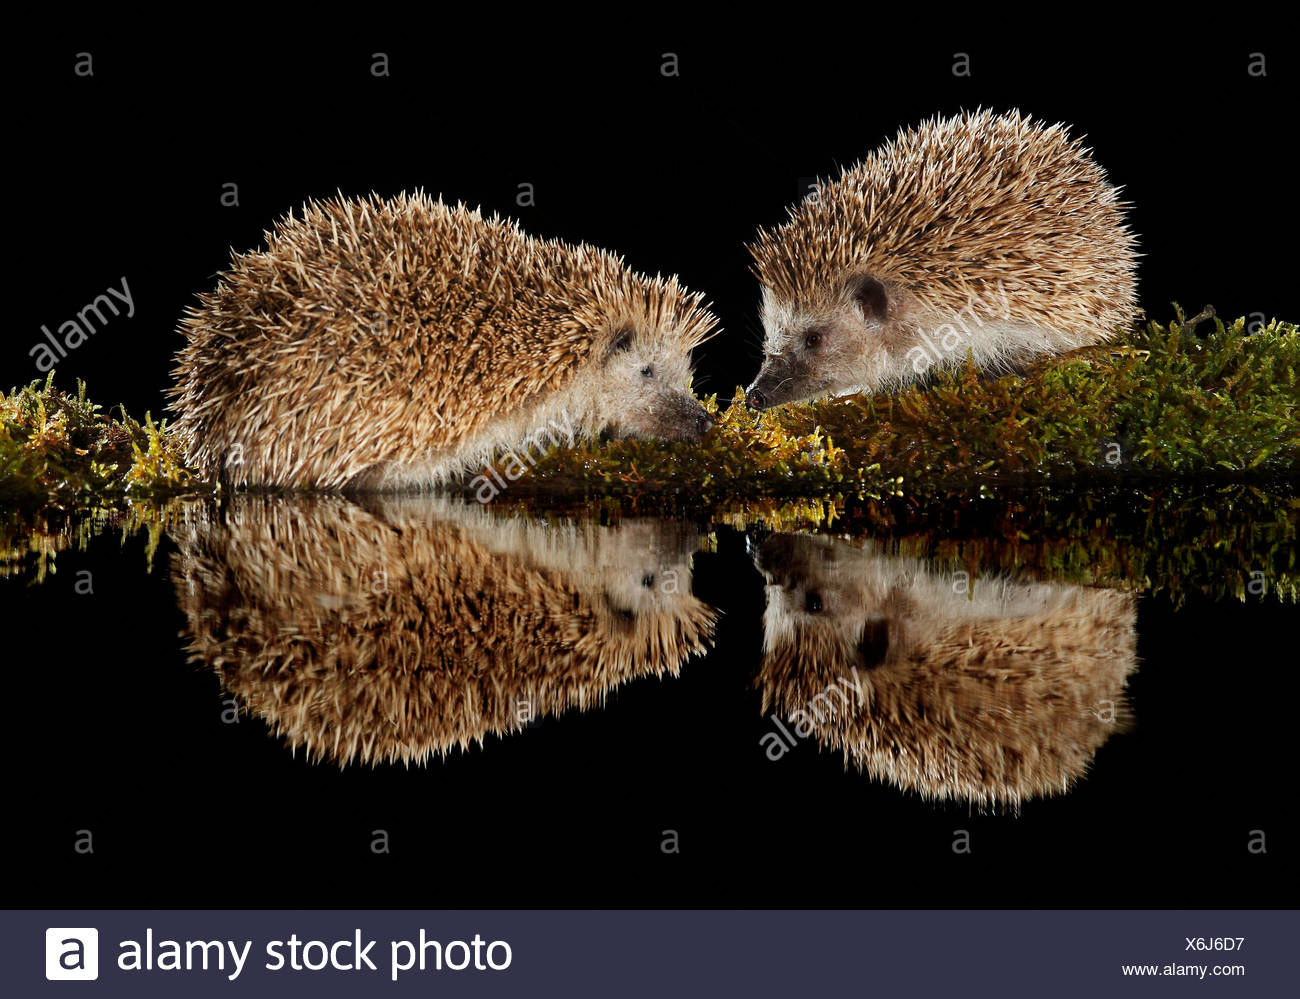 European hedgehogs at night and their reflection -Spain - Stock Image